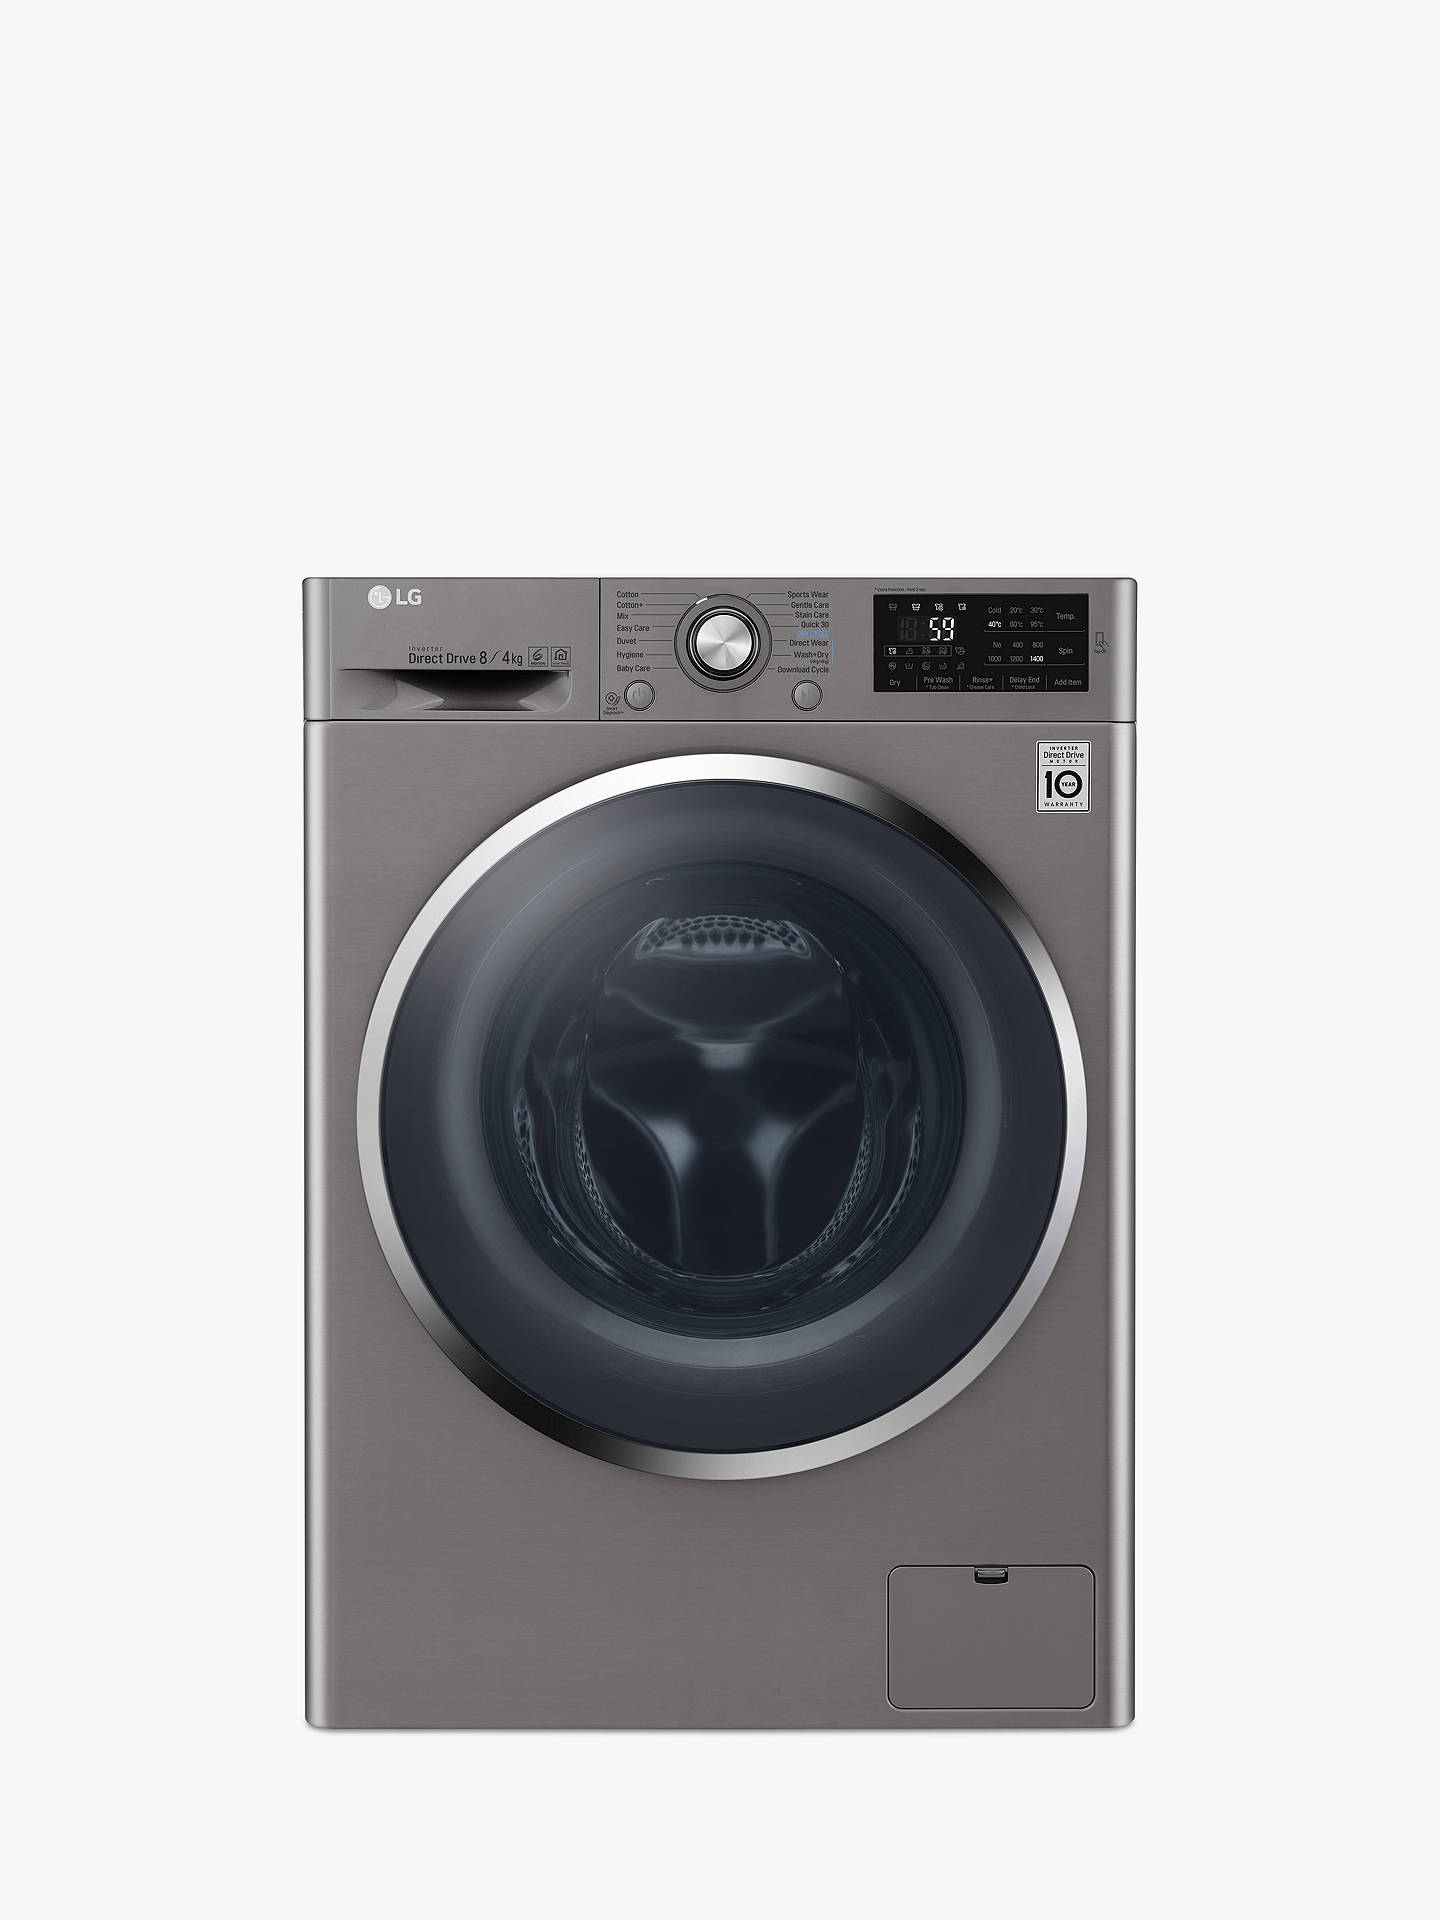 LG F4J6AM2S Freestanding Washer Dryer, 8kg Wash/4kg Dry Load, A Energy Rating, 1400rpm Spin, Shiny Steel